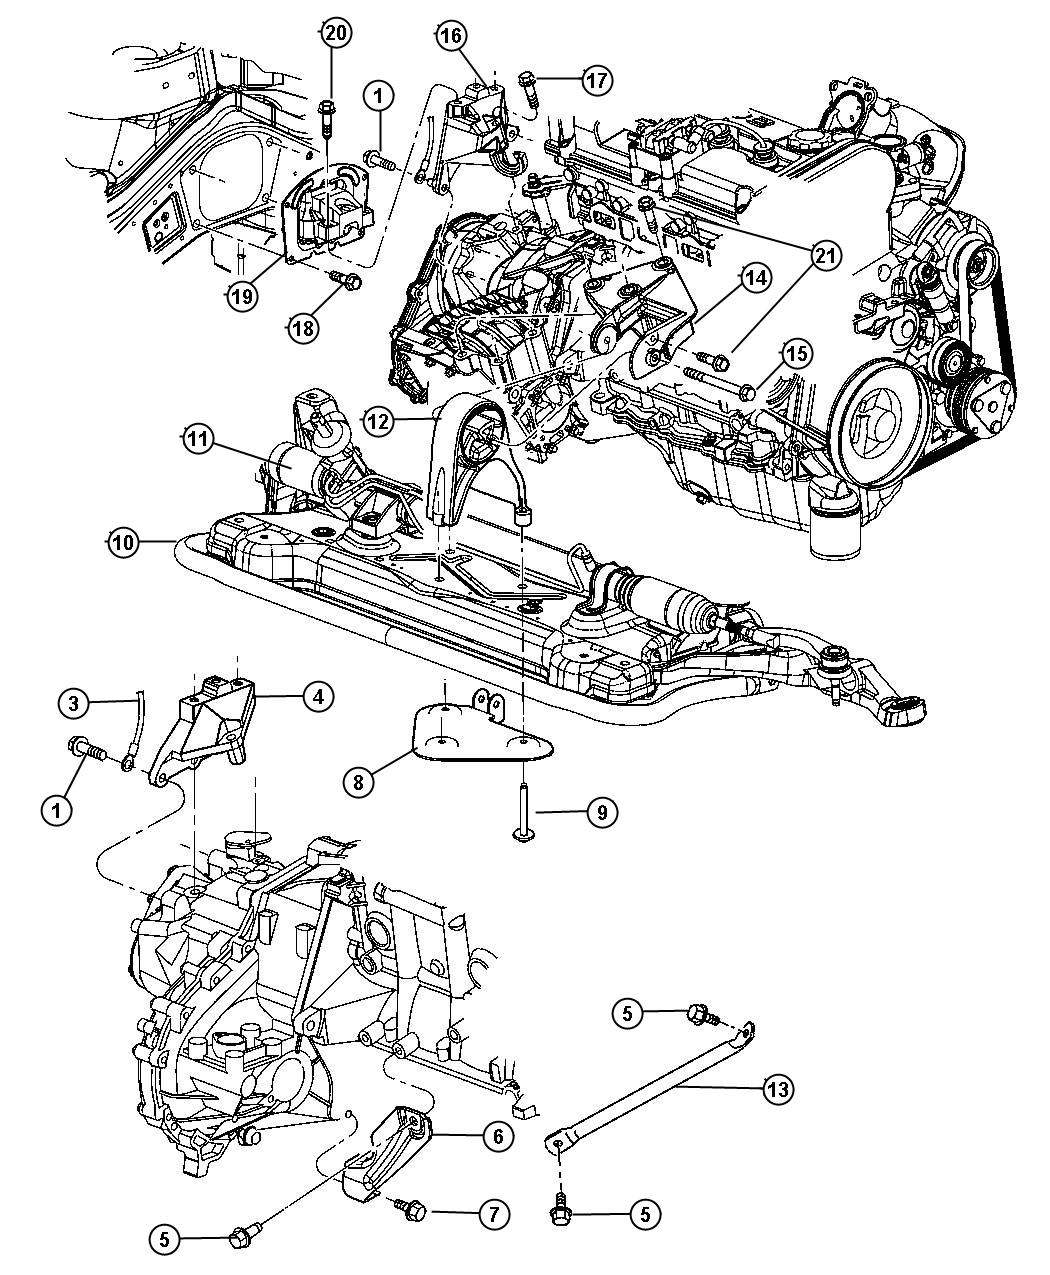 2004 chrysler sebring wiring diagram gas interlock system engine for get free image